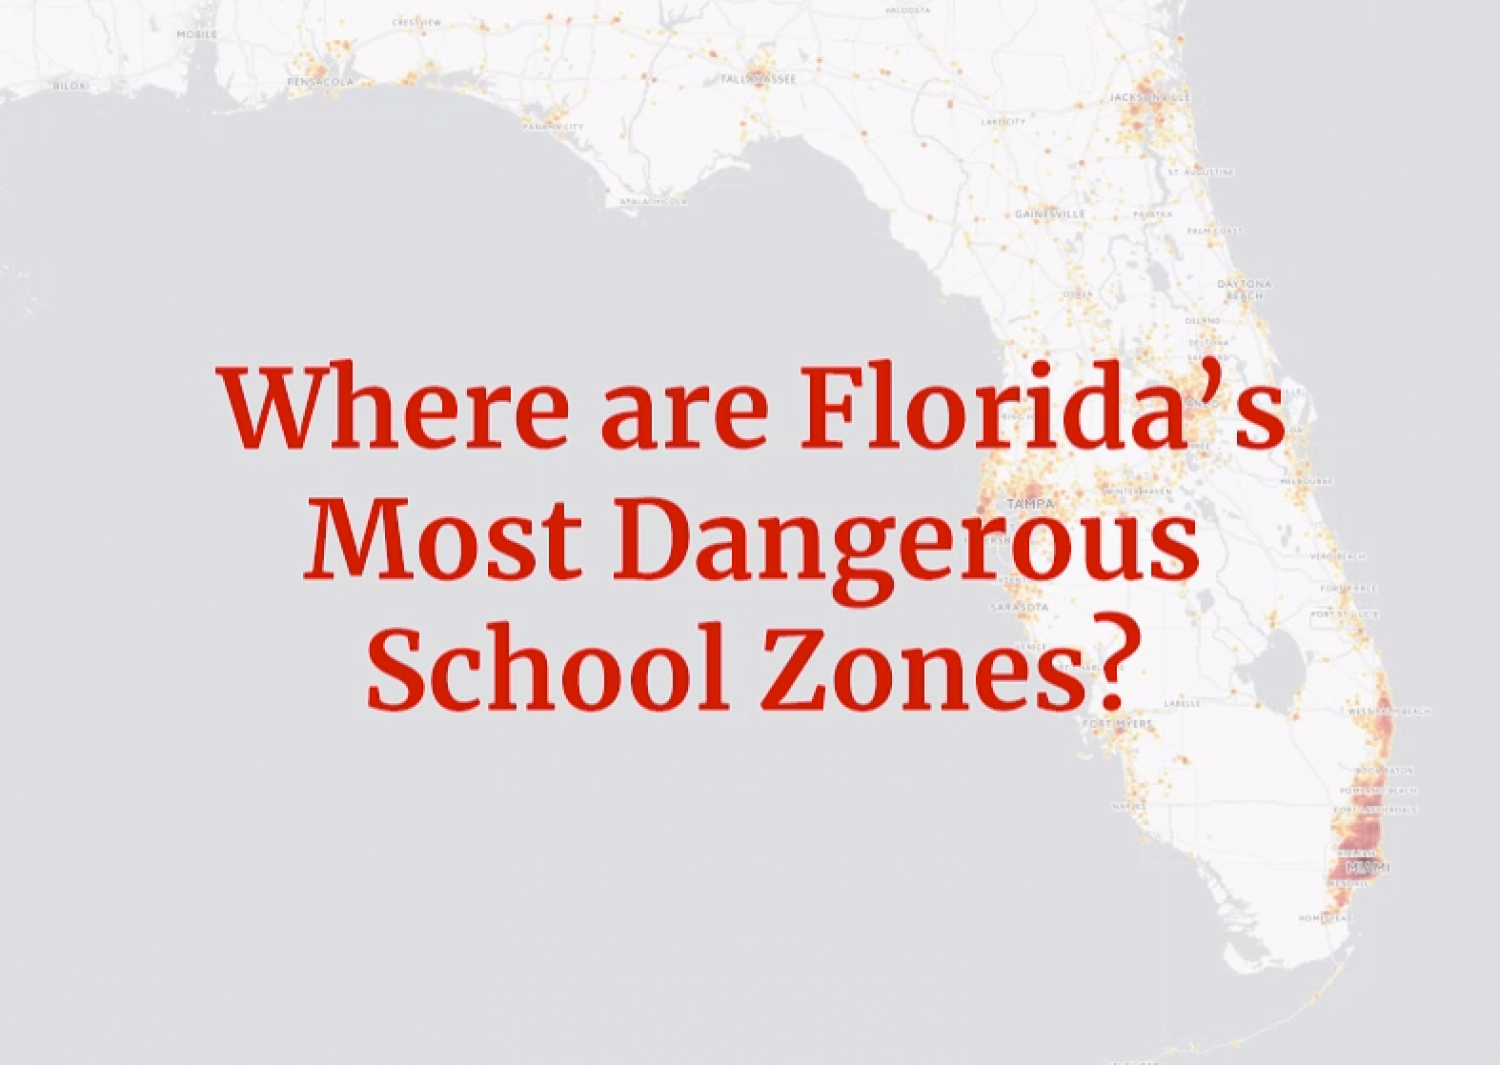 STUDY: Most Dangerous School Zones in Florida Infographic